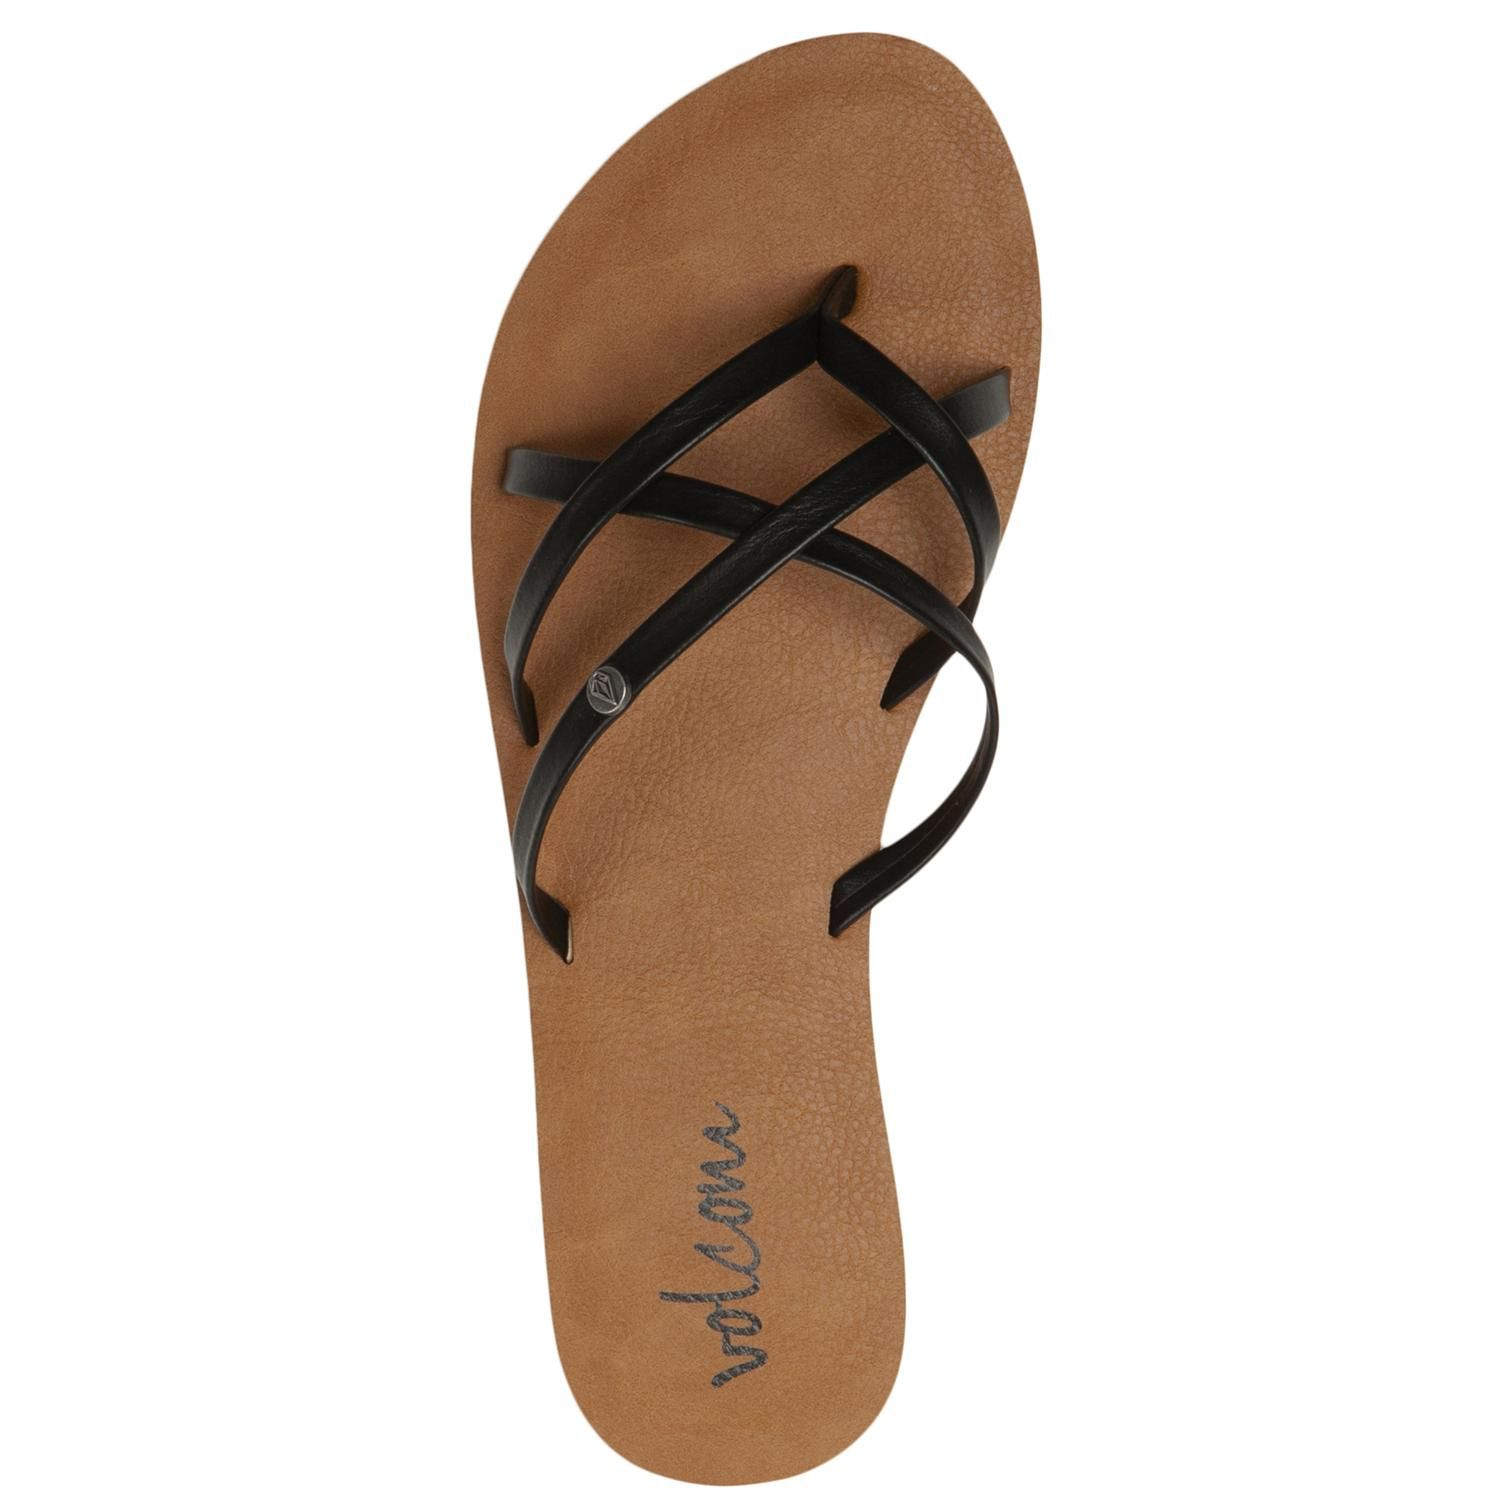 Volcom New School Sandals - Womens $25.00